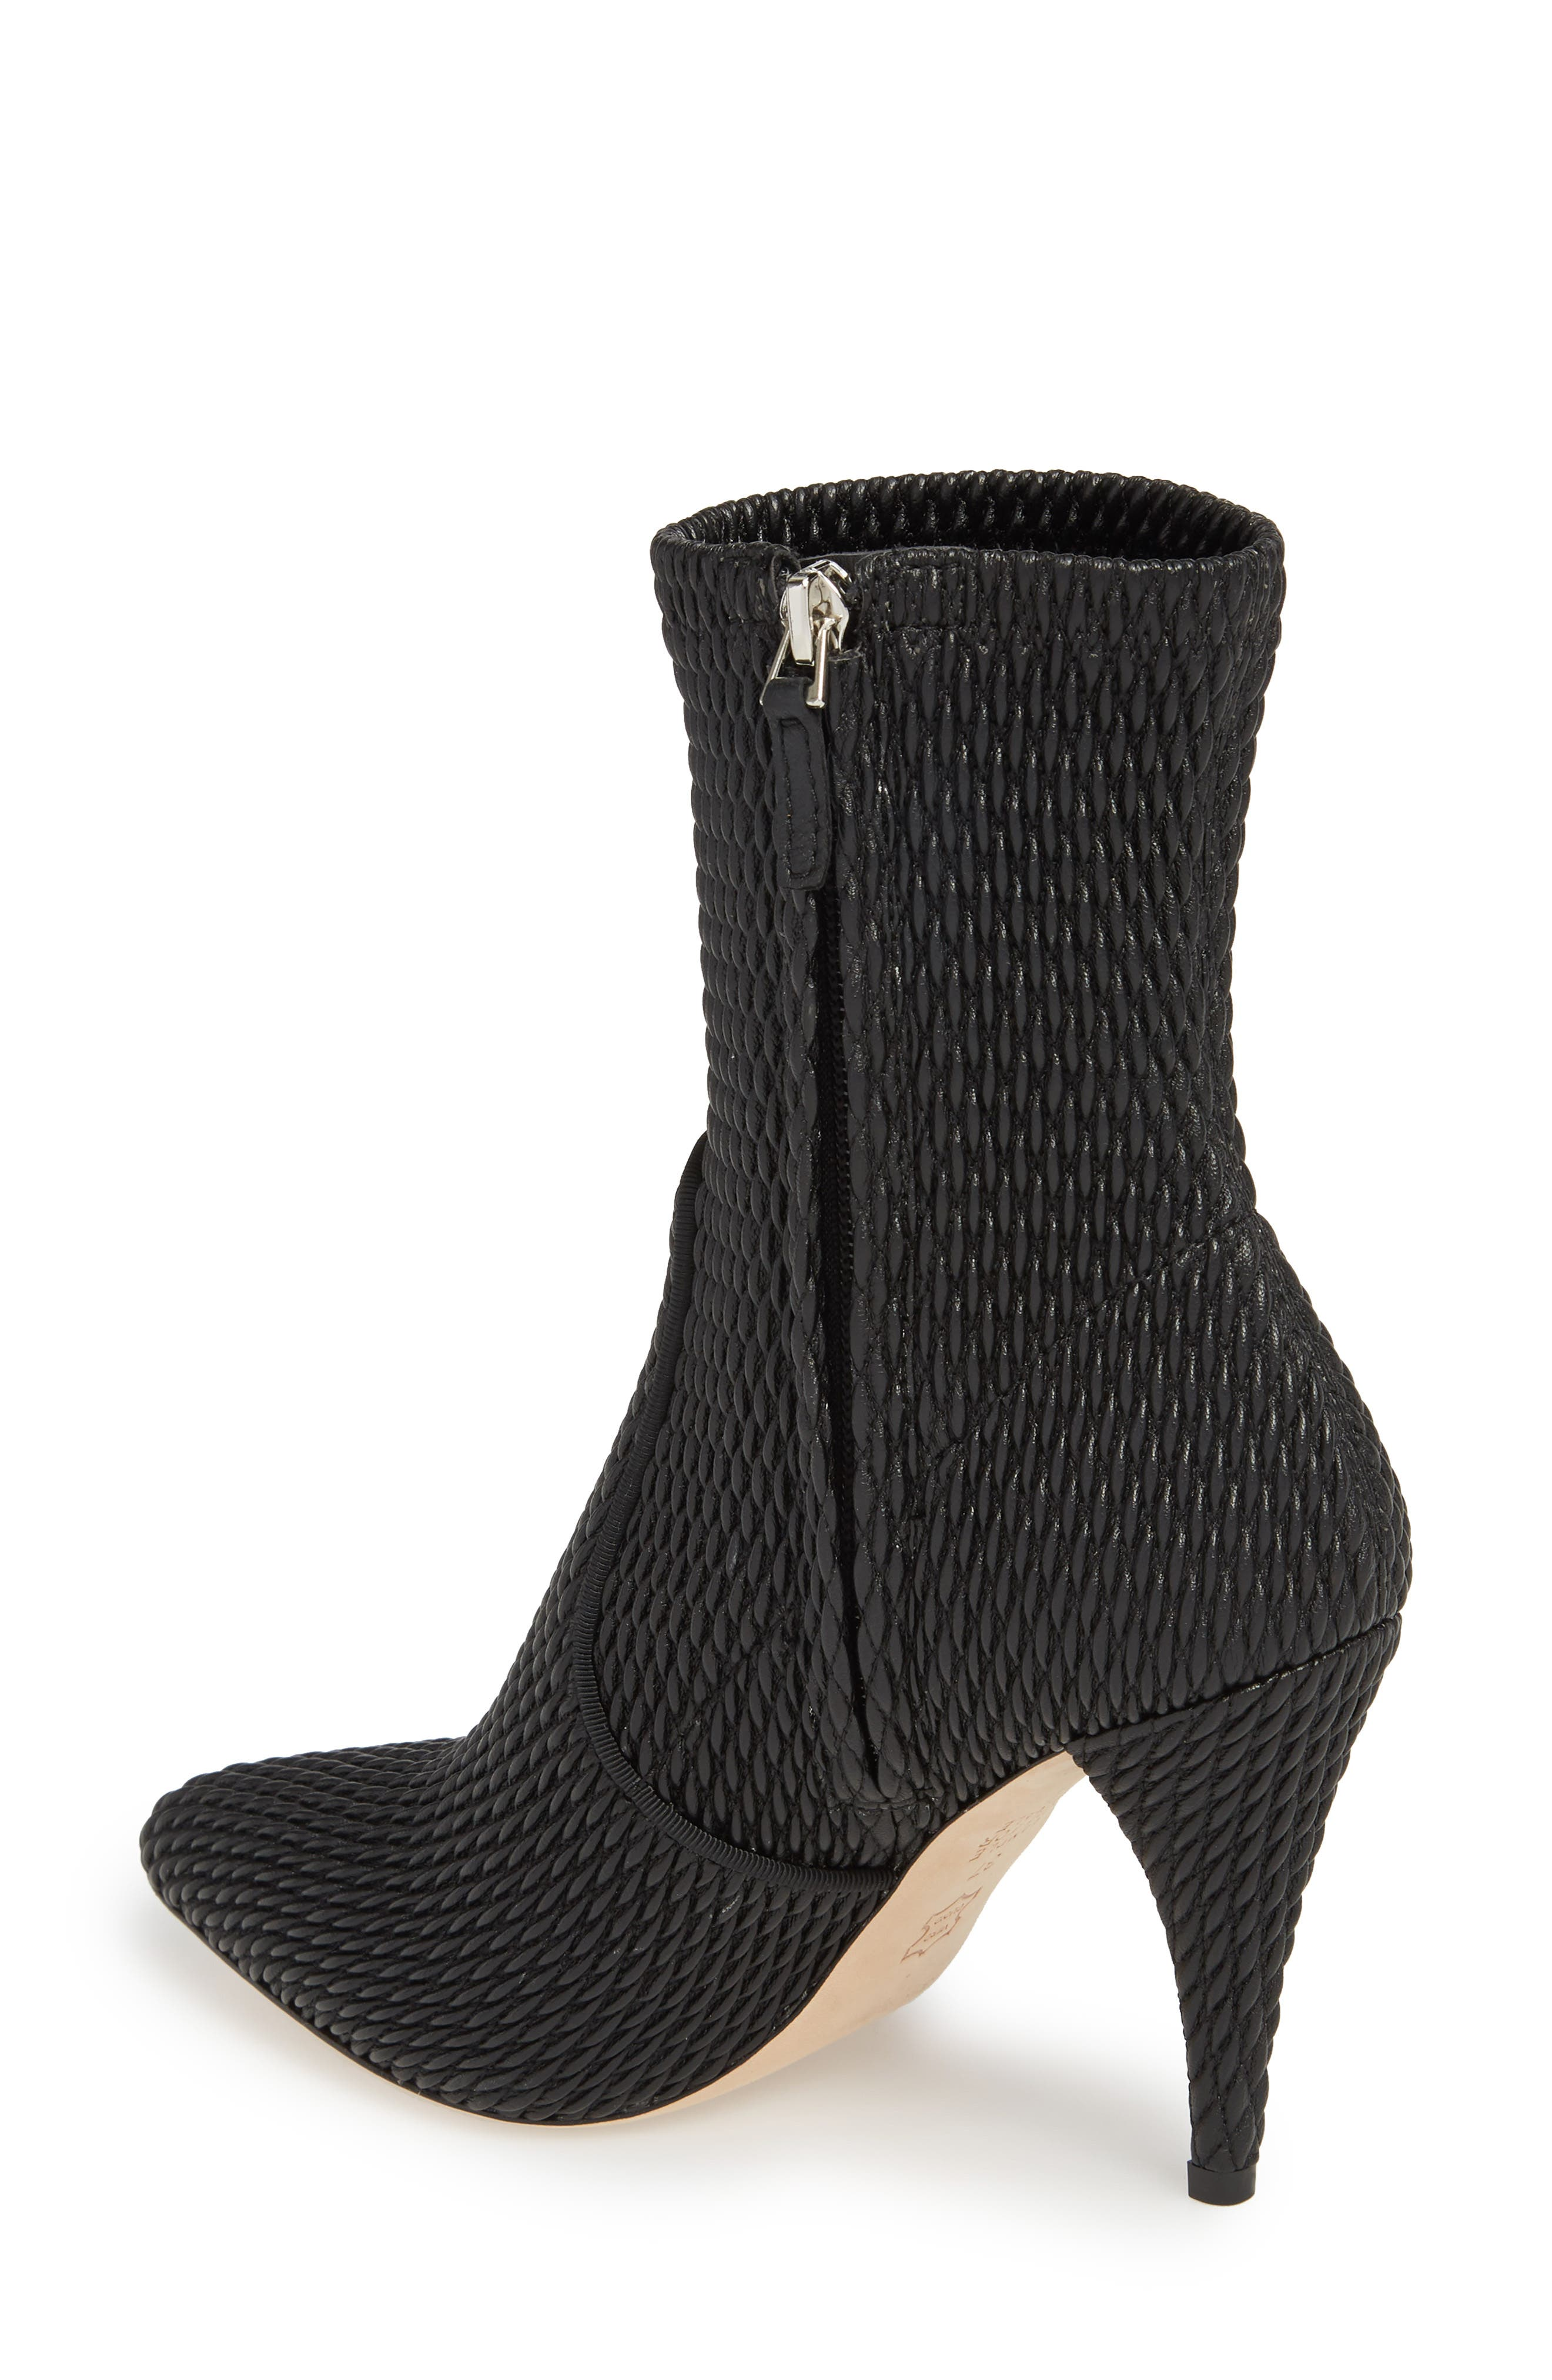 Hedde Pointy Toe Bootie,                             Alternate thumbnail 2, color,                             Black